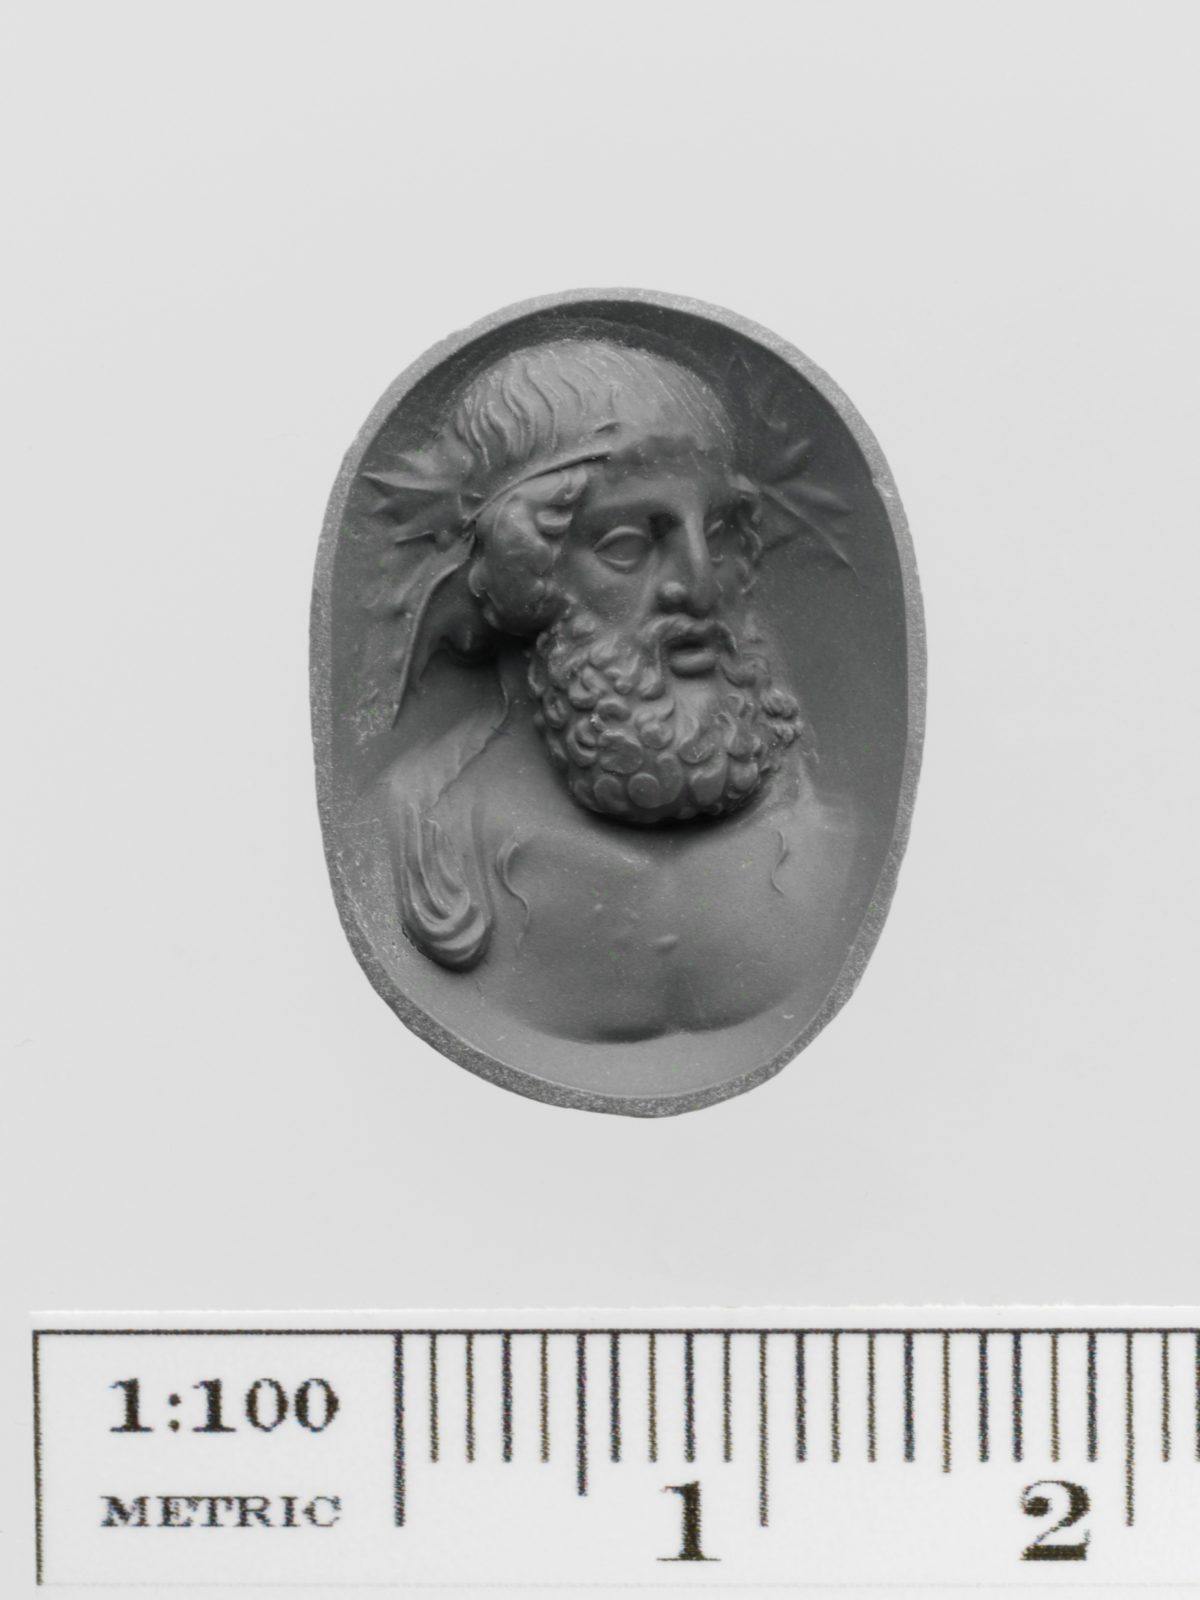 Amethyst ring stone with a bust of Dionysos